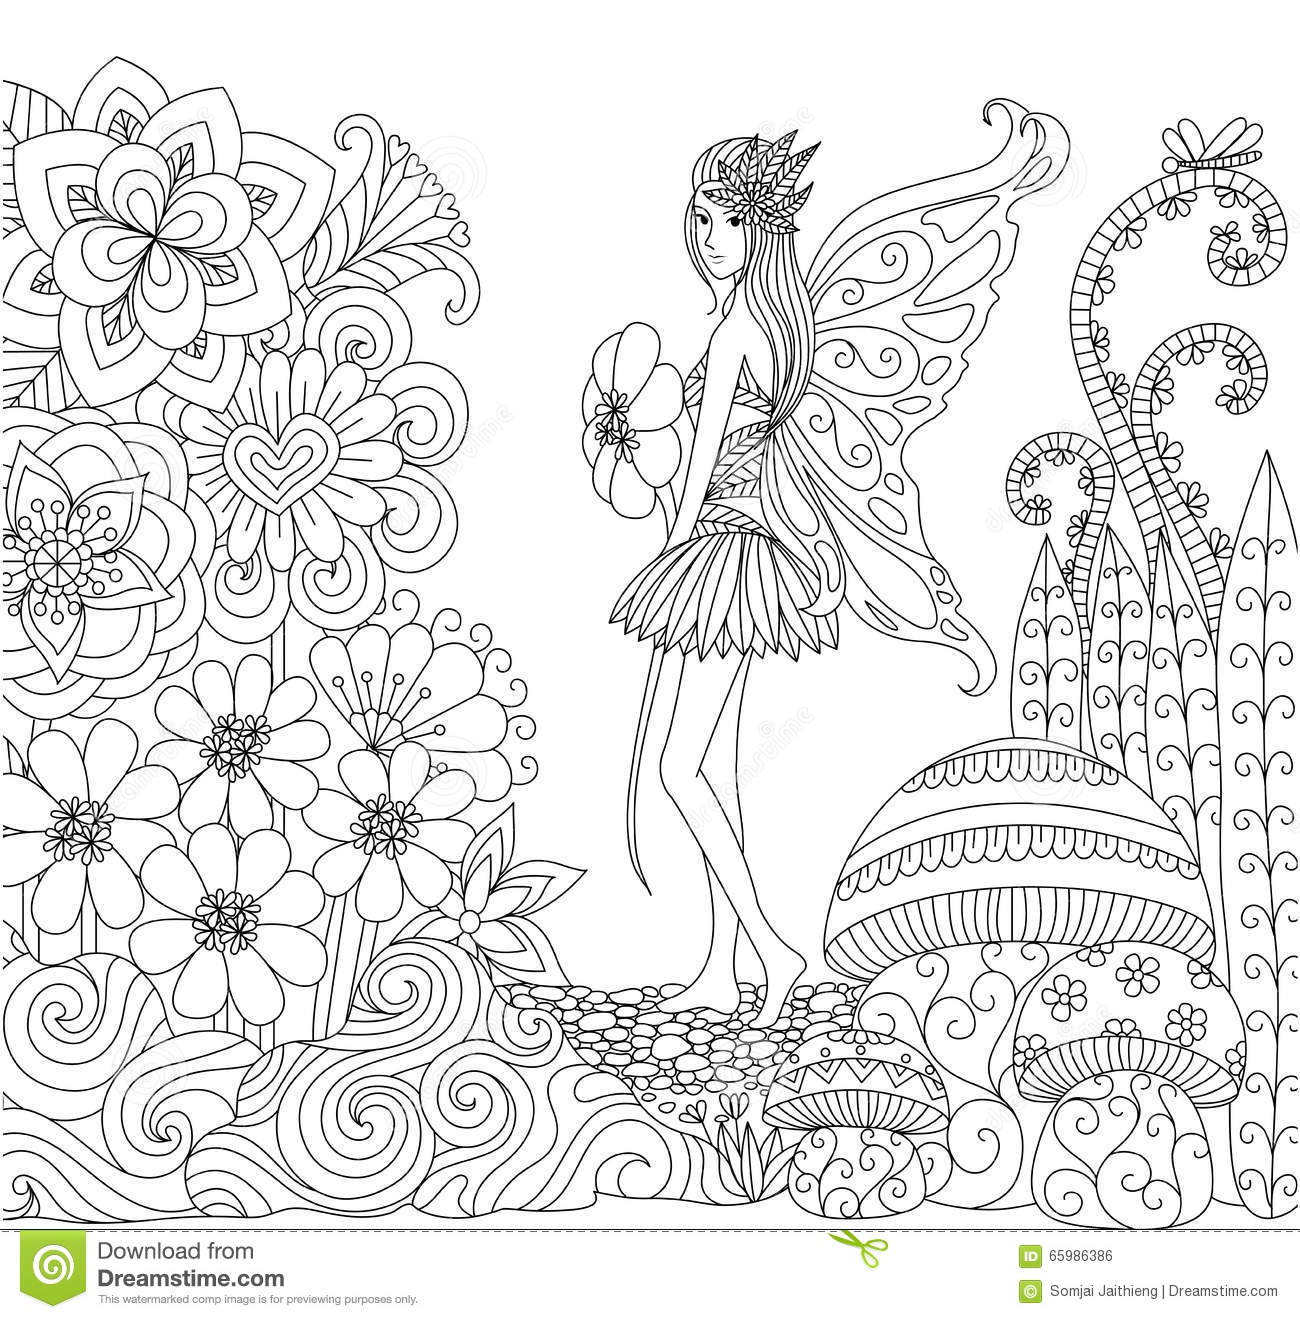 Hand Drawn Fairy Walking In The Flowers Land For Coloring Book